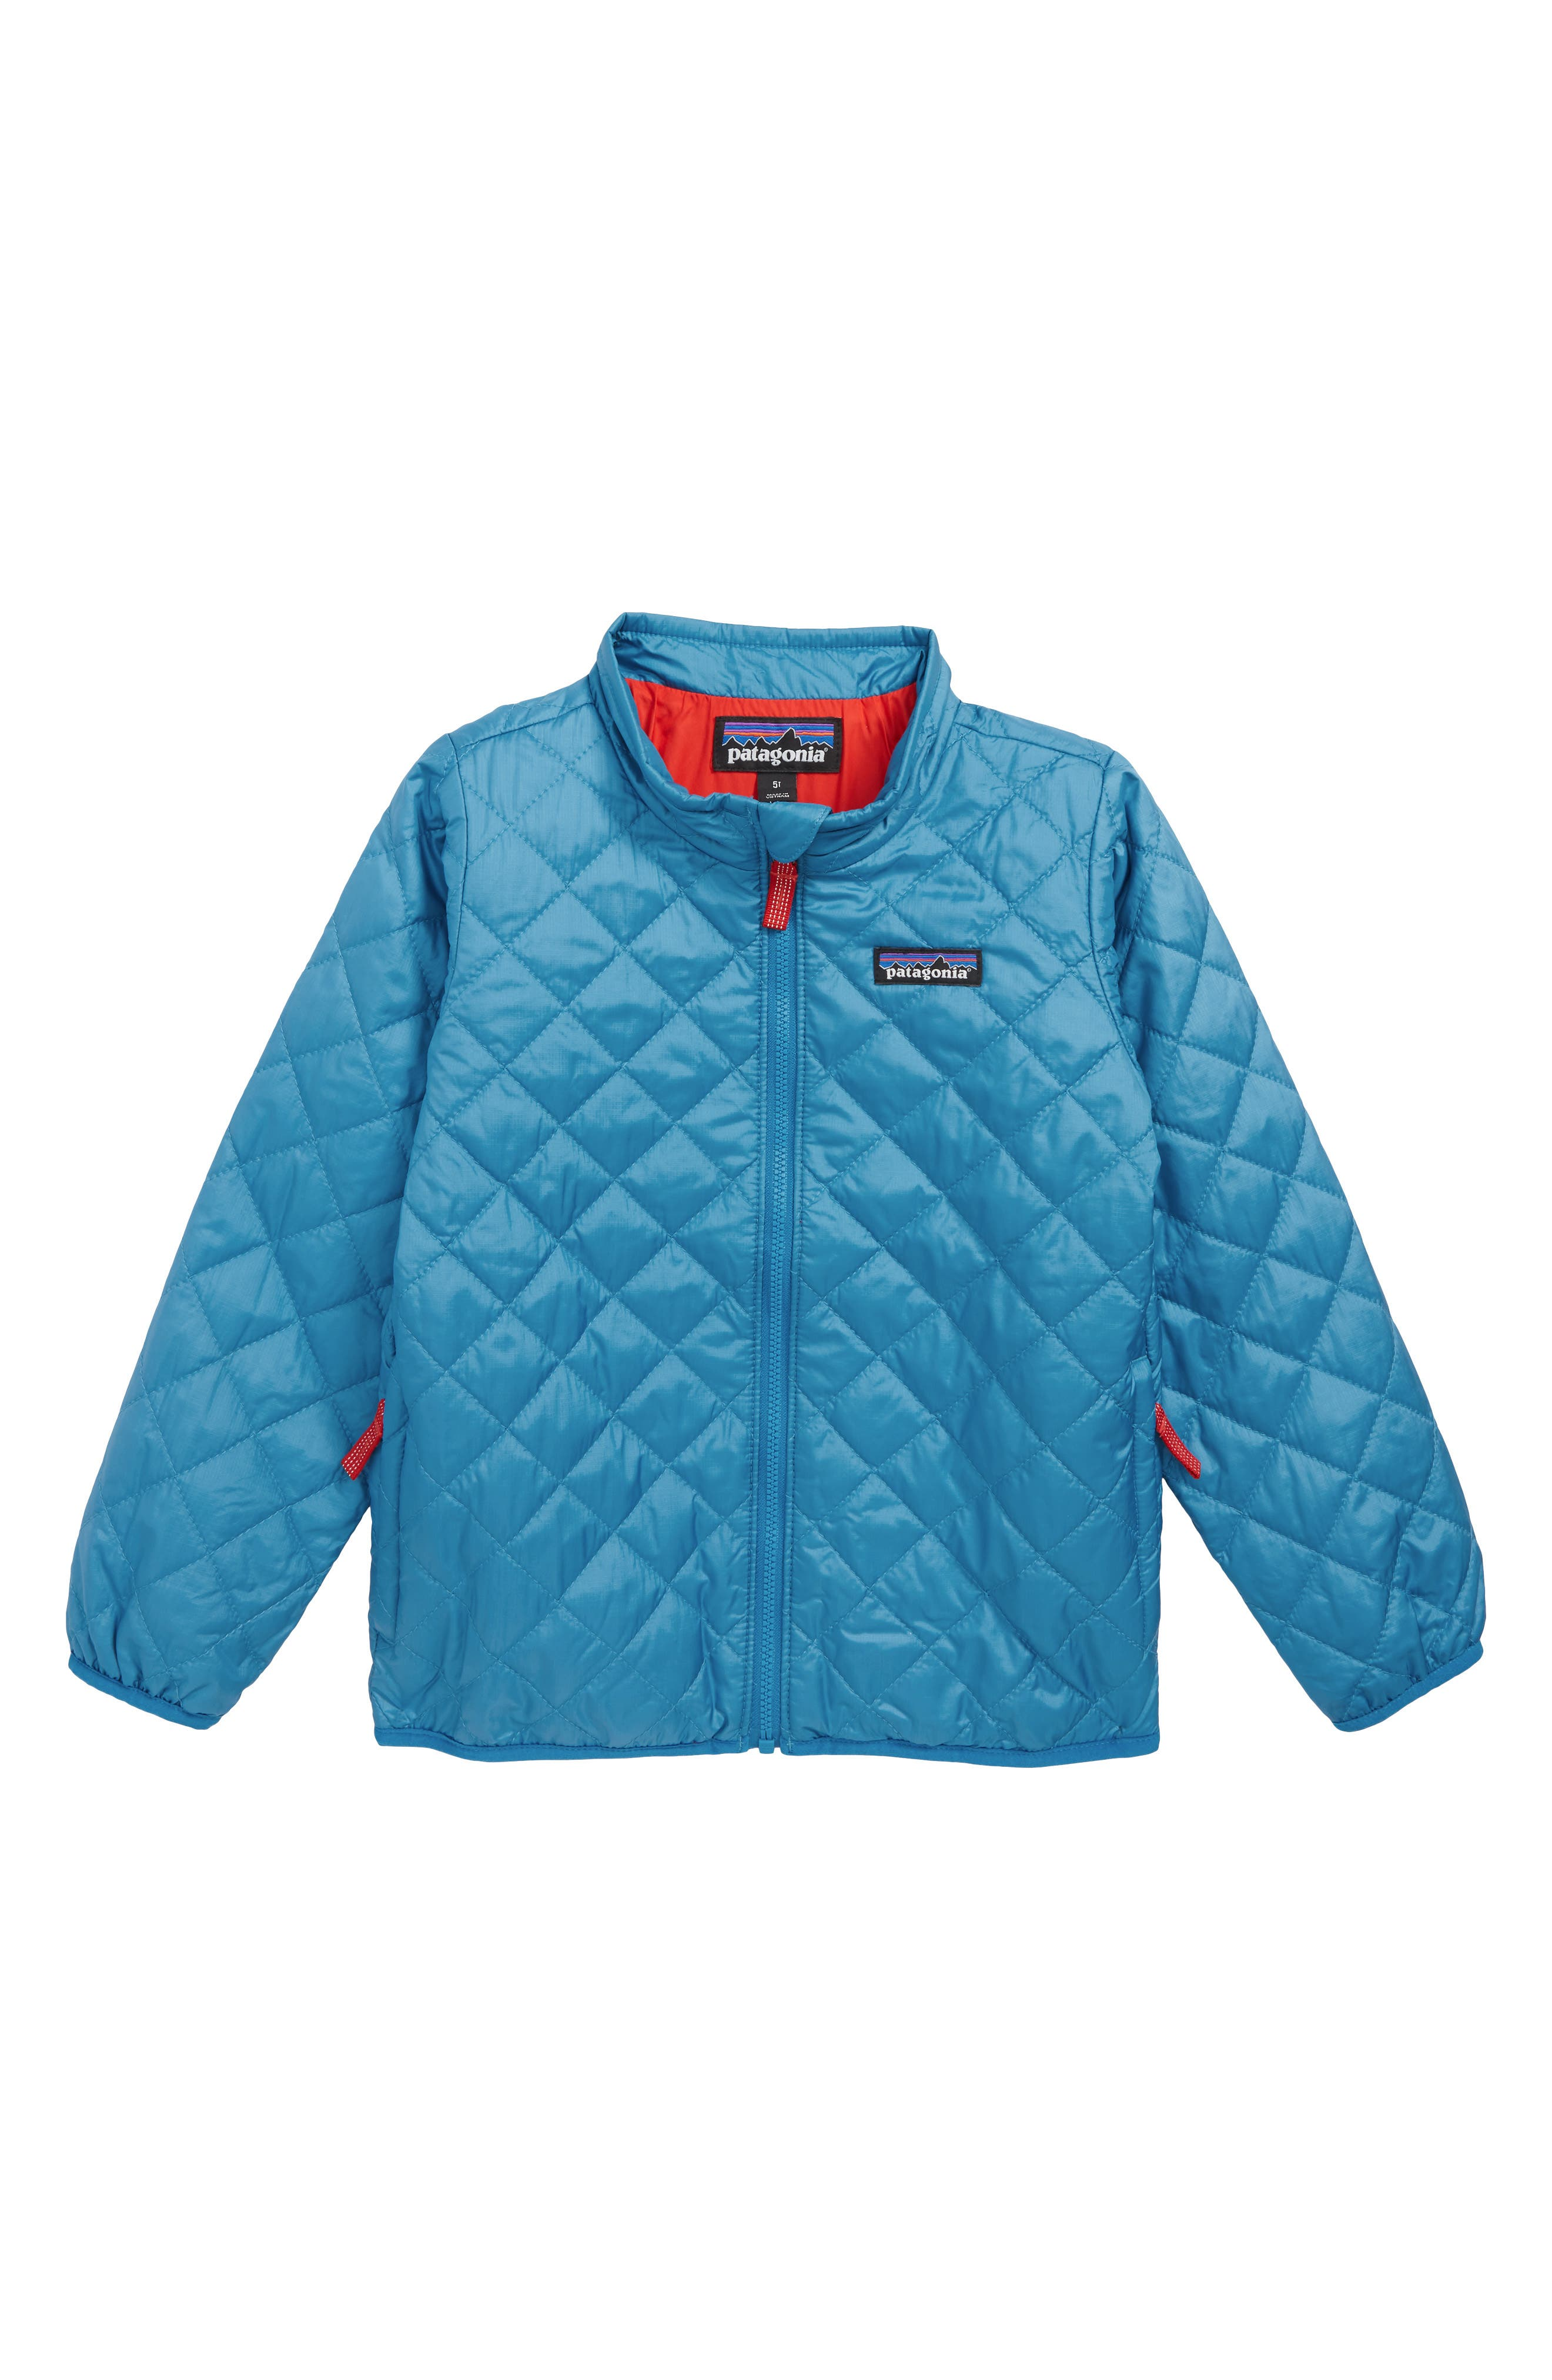 PATAGONIA Nano Puff<sup>®</sup> Quilted Water Resistant Jacket, Main, color, BALKAN BLUE